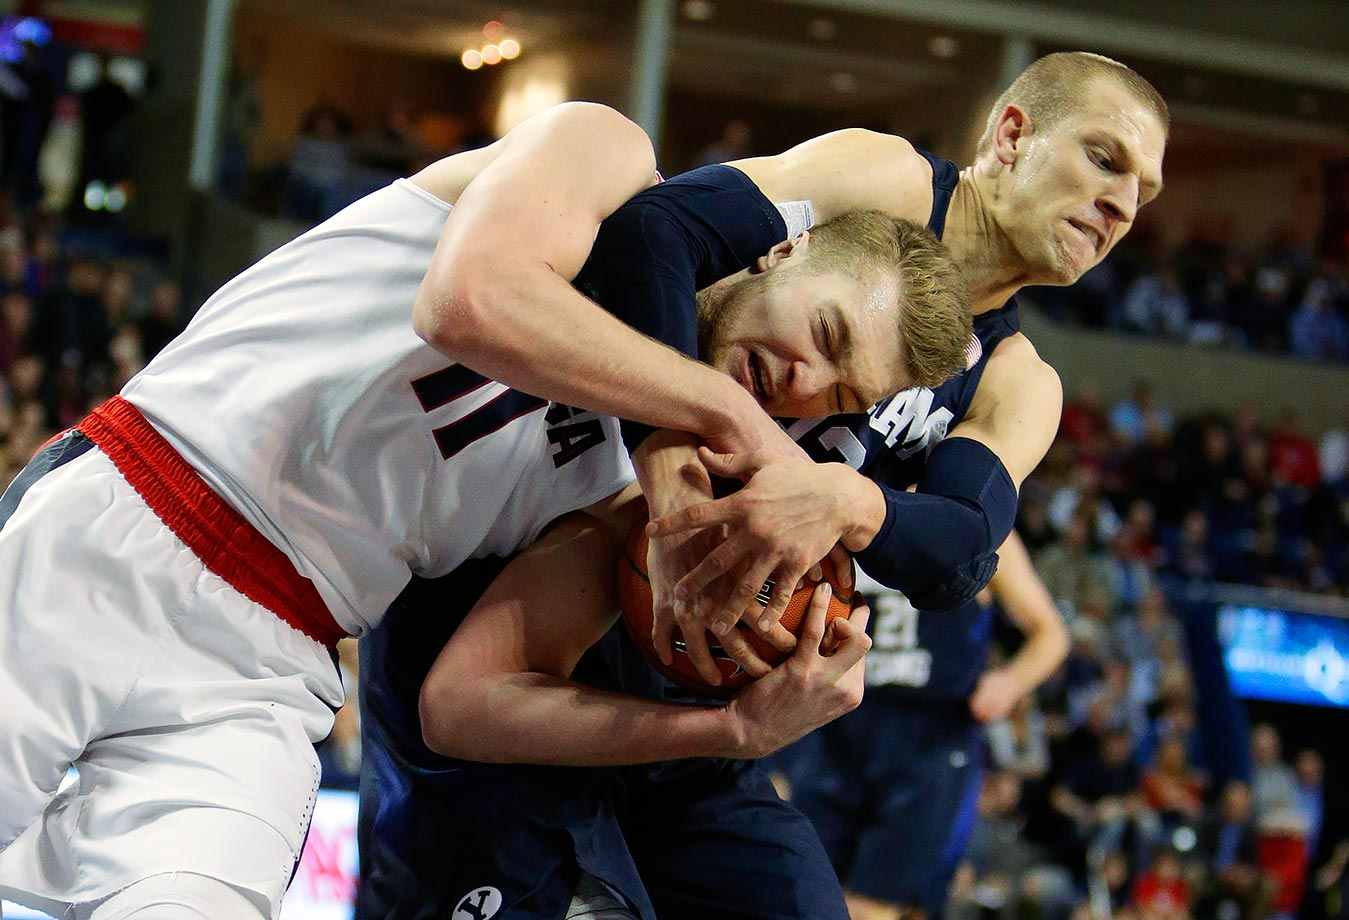 Gonzaga's Domantas Sabonis and BYU's Nate Austin fight for a rebound. Sabonis needs to watch out for a noogie.